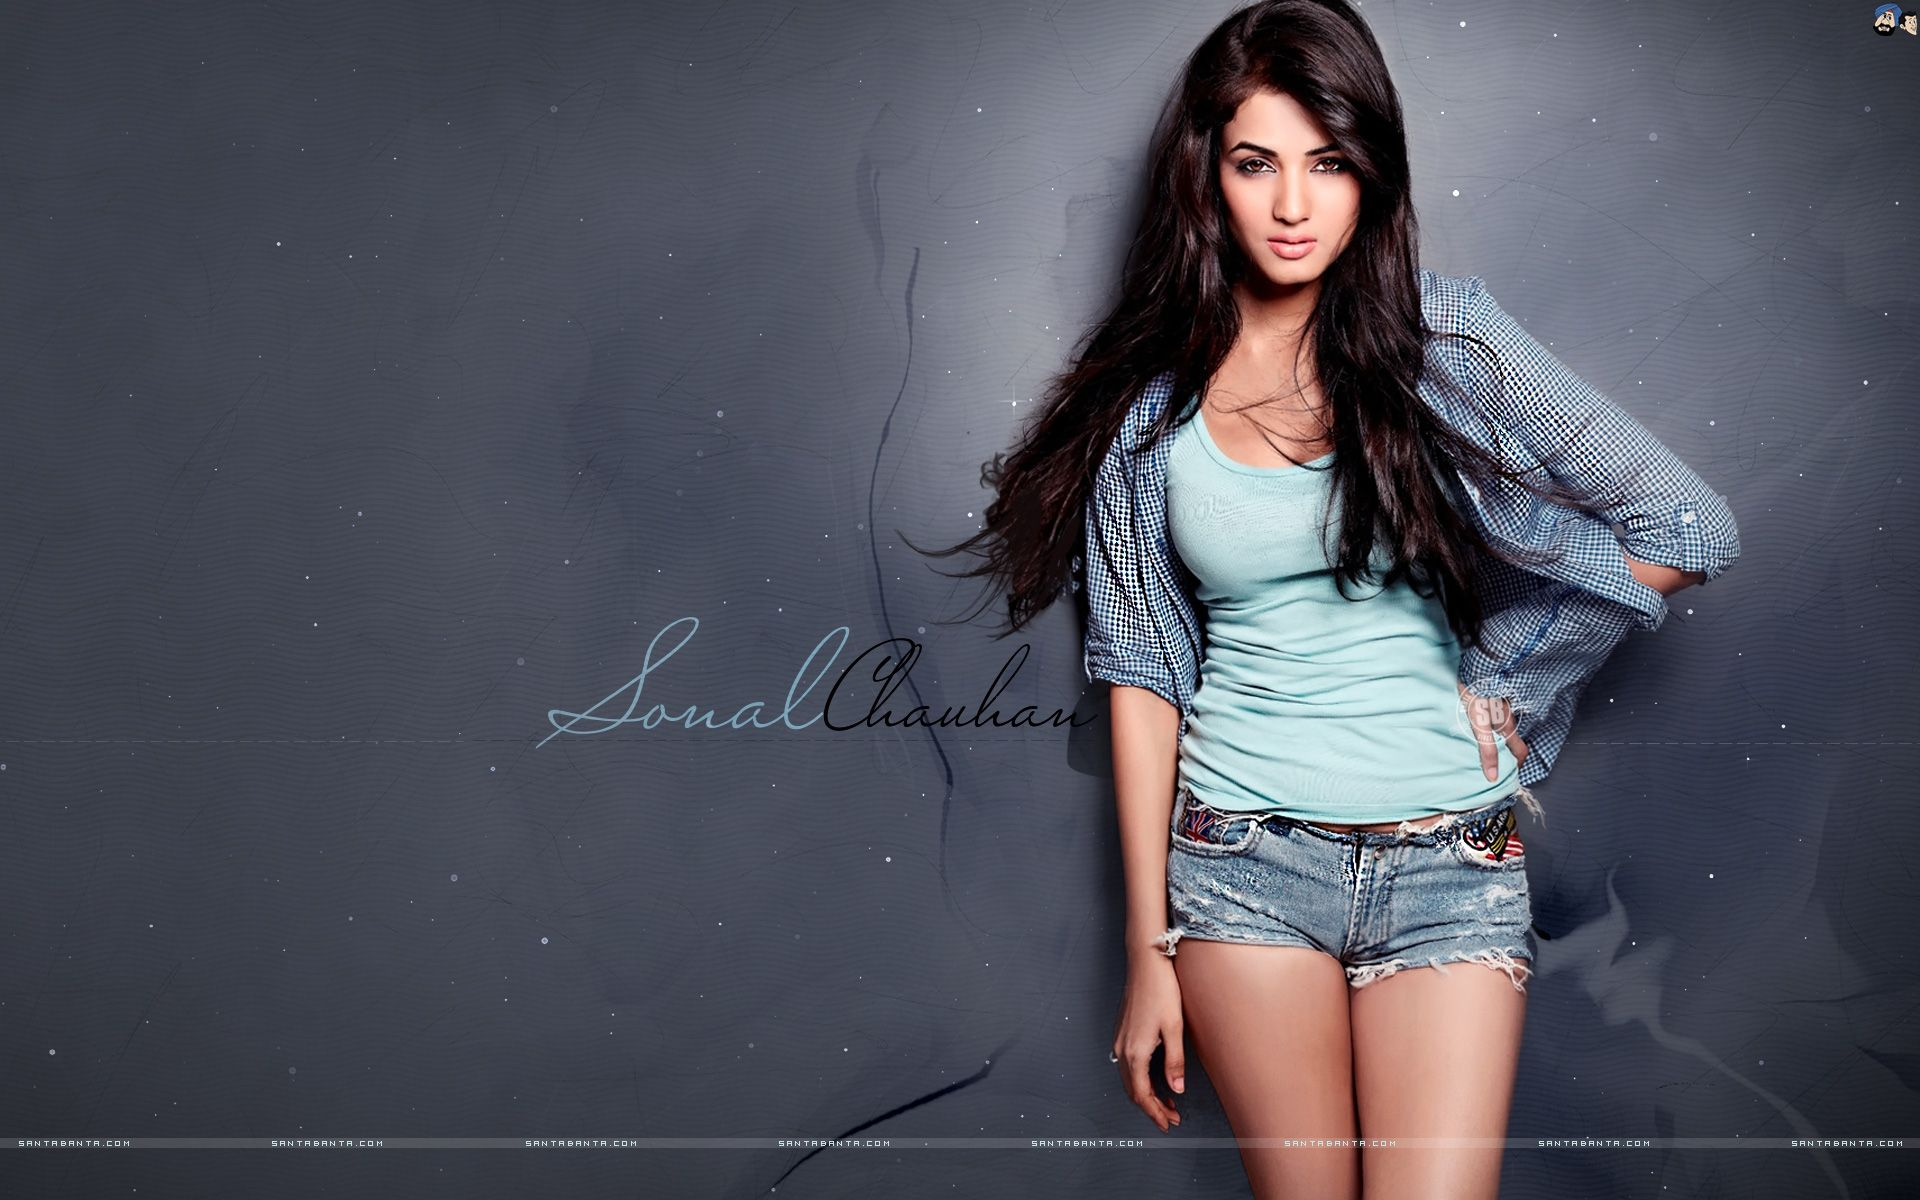 sonal chauhan hot hd wallpaper #11 | amrita rao | pinterest | hd